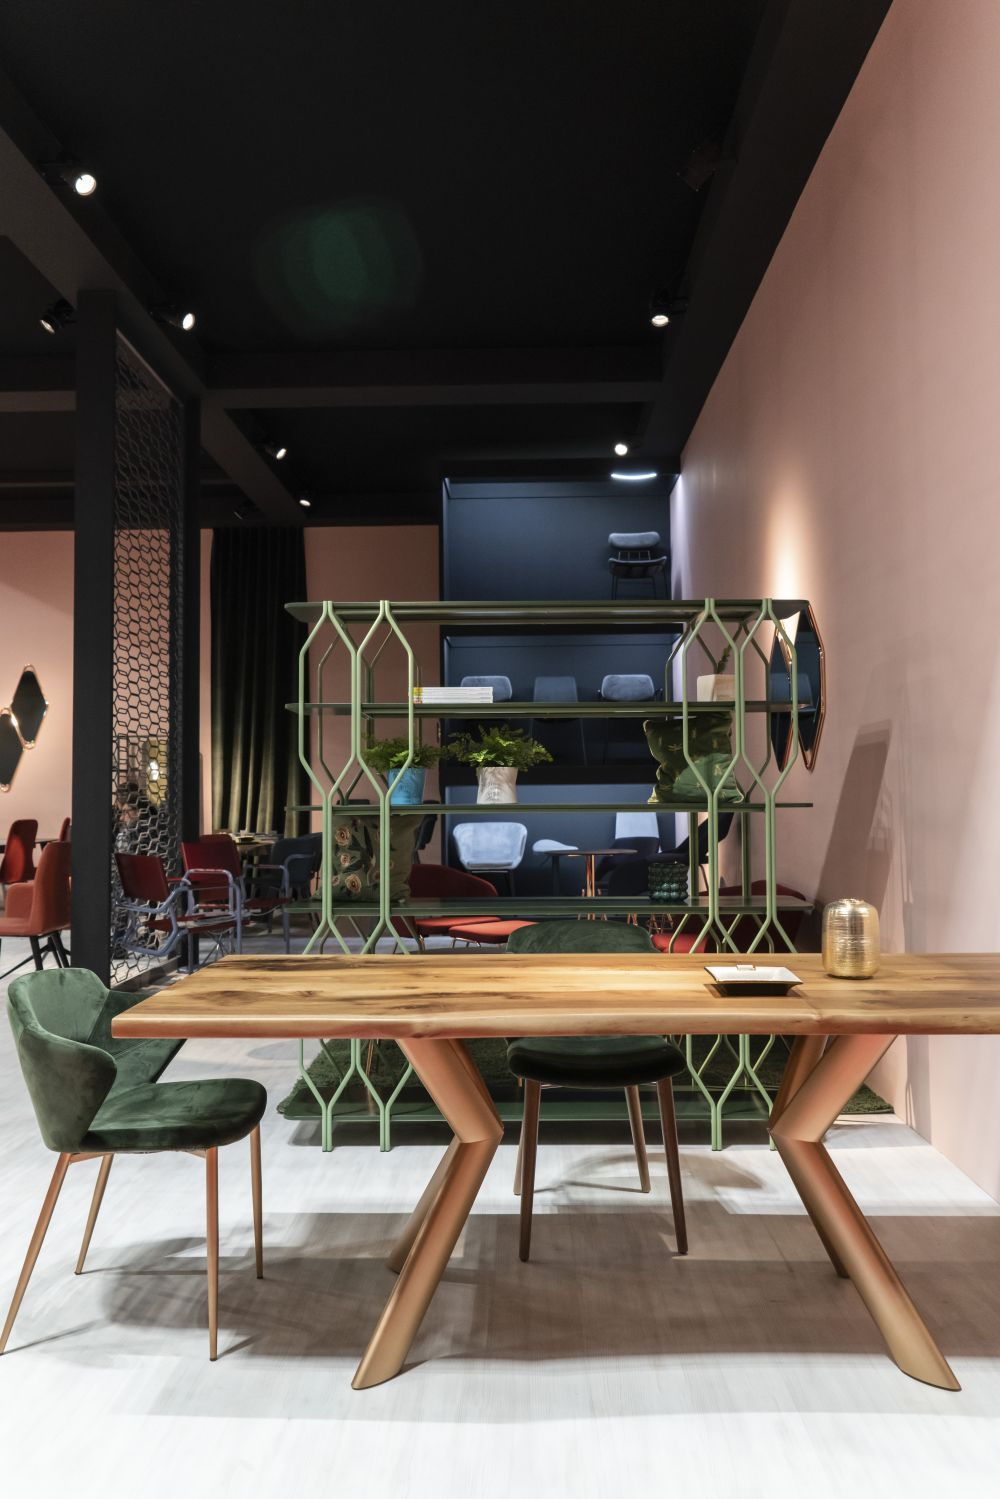 Joker ambiance italy table - Home Decorating Trends - Homedit